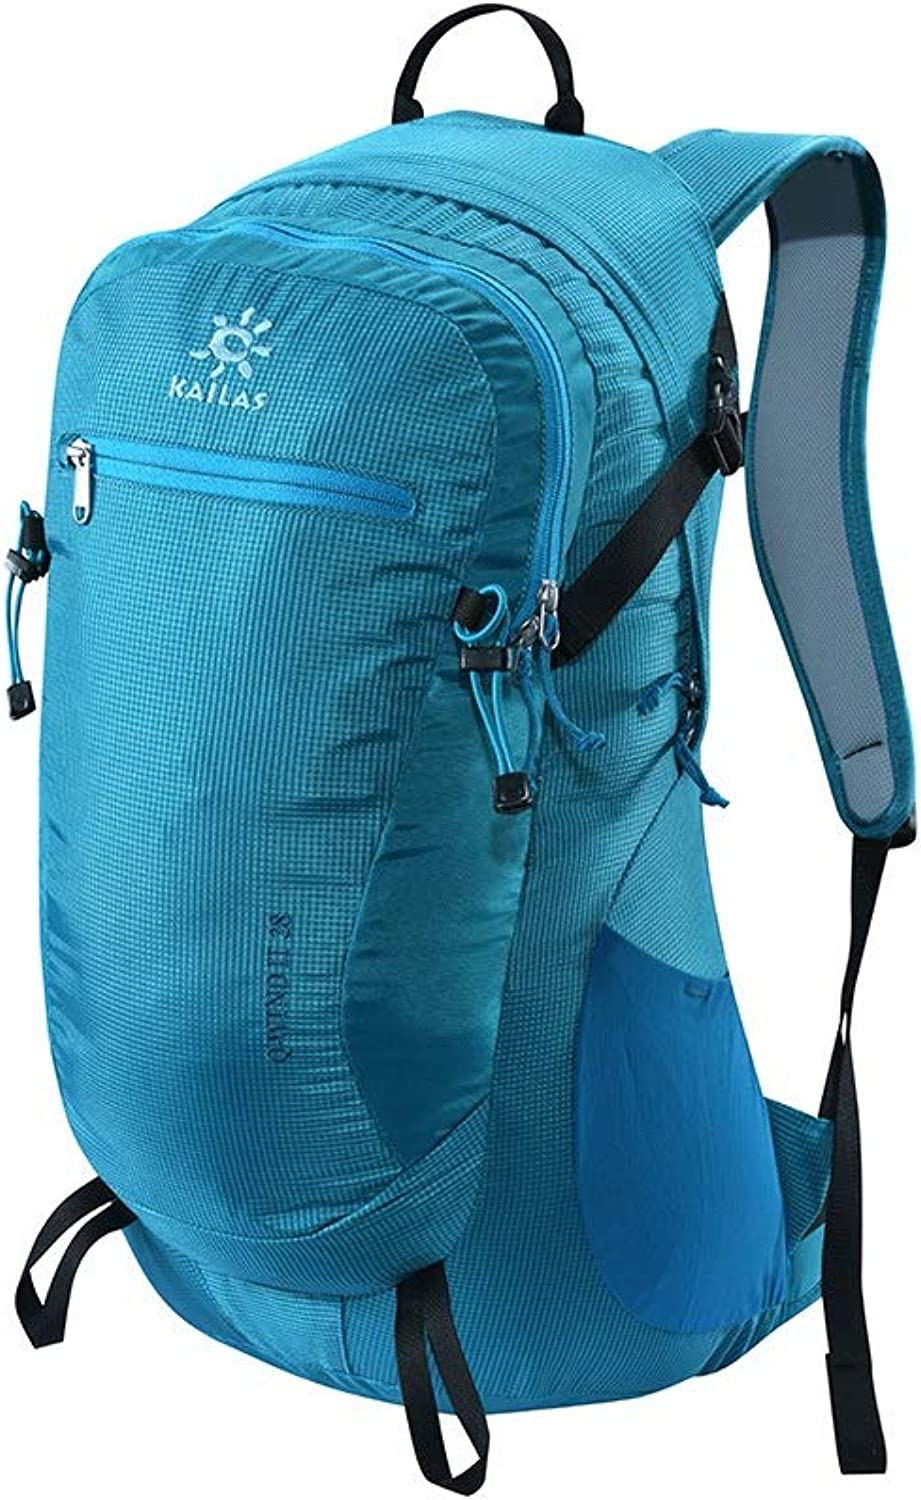 Yikuo Outdoor Sports Travel Hiking Bag 28L Light Mountaineering Backpack color bluee red Black Size 52  26  16cm Premium Sports Backpack (color   bluee)